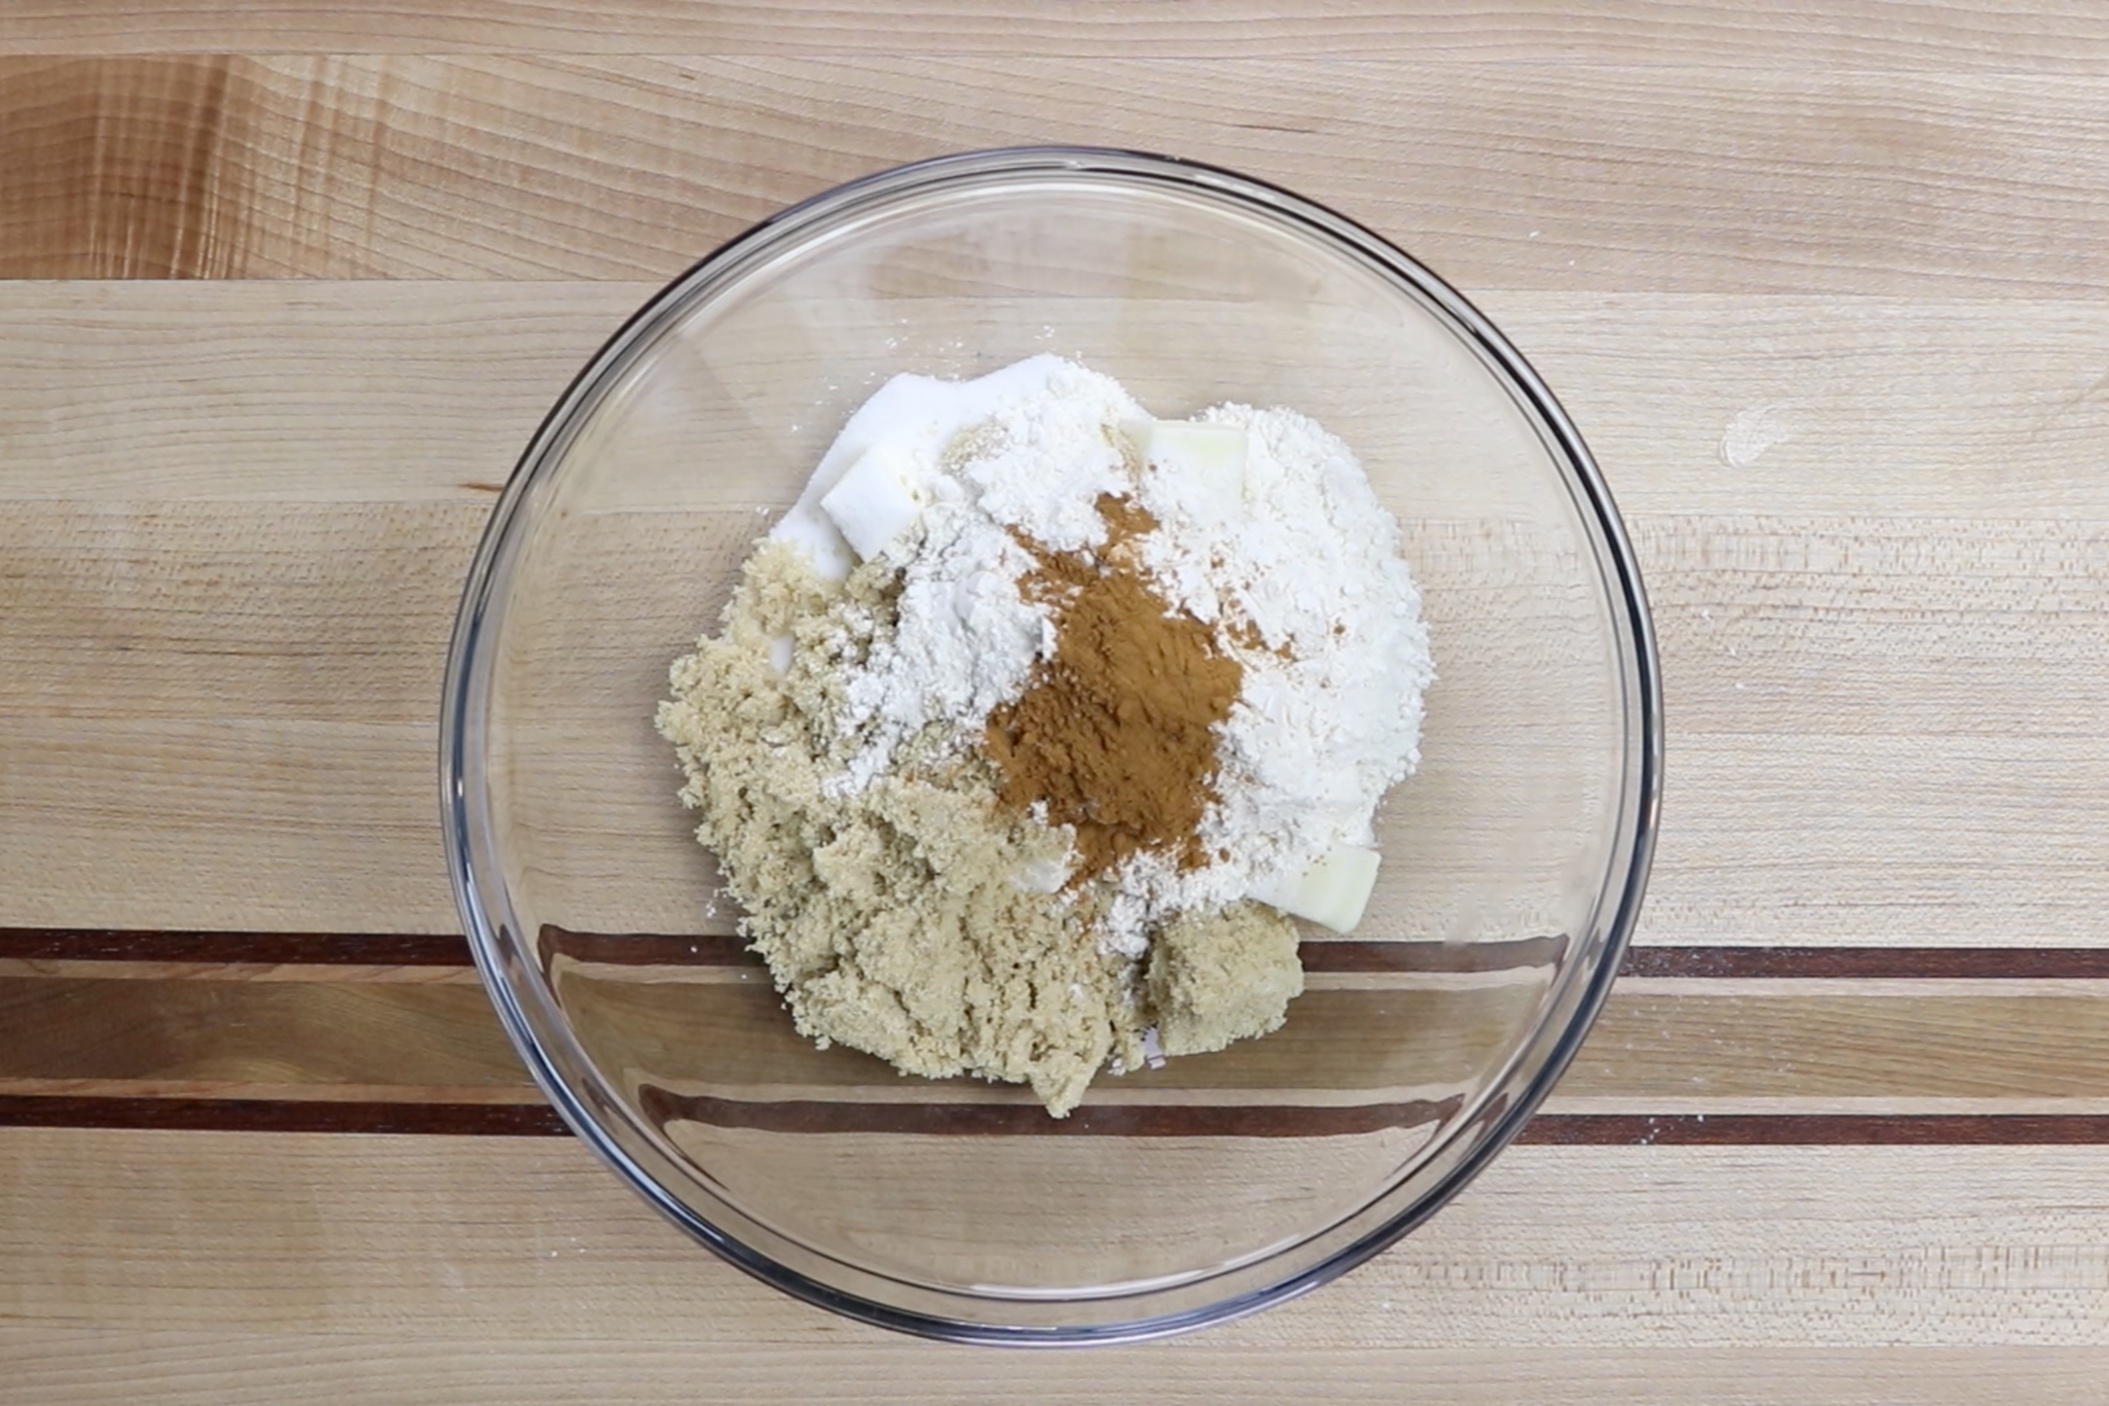 2. Prepare the topping. In a medium bowl, combine butter, sugar, brown sugar, flour and cinnamon. -